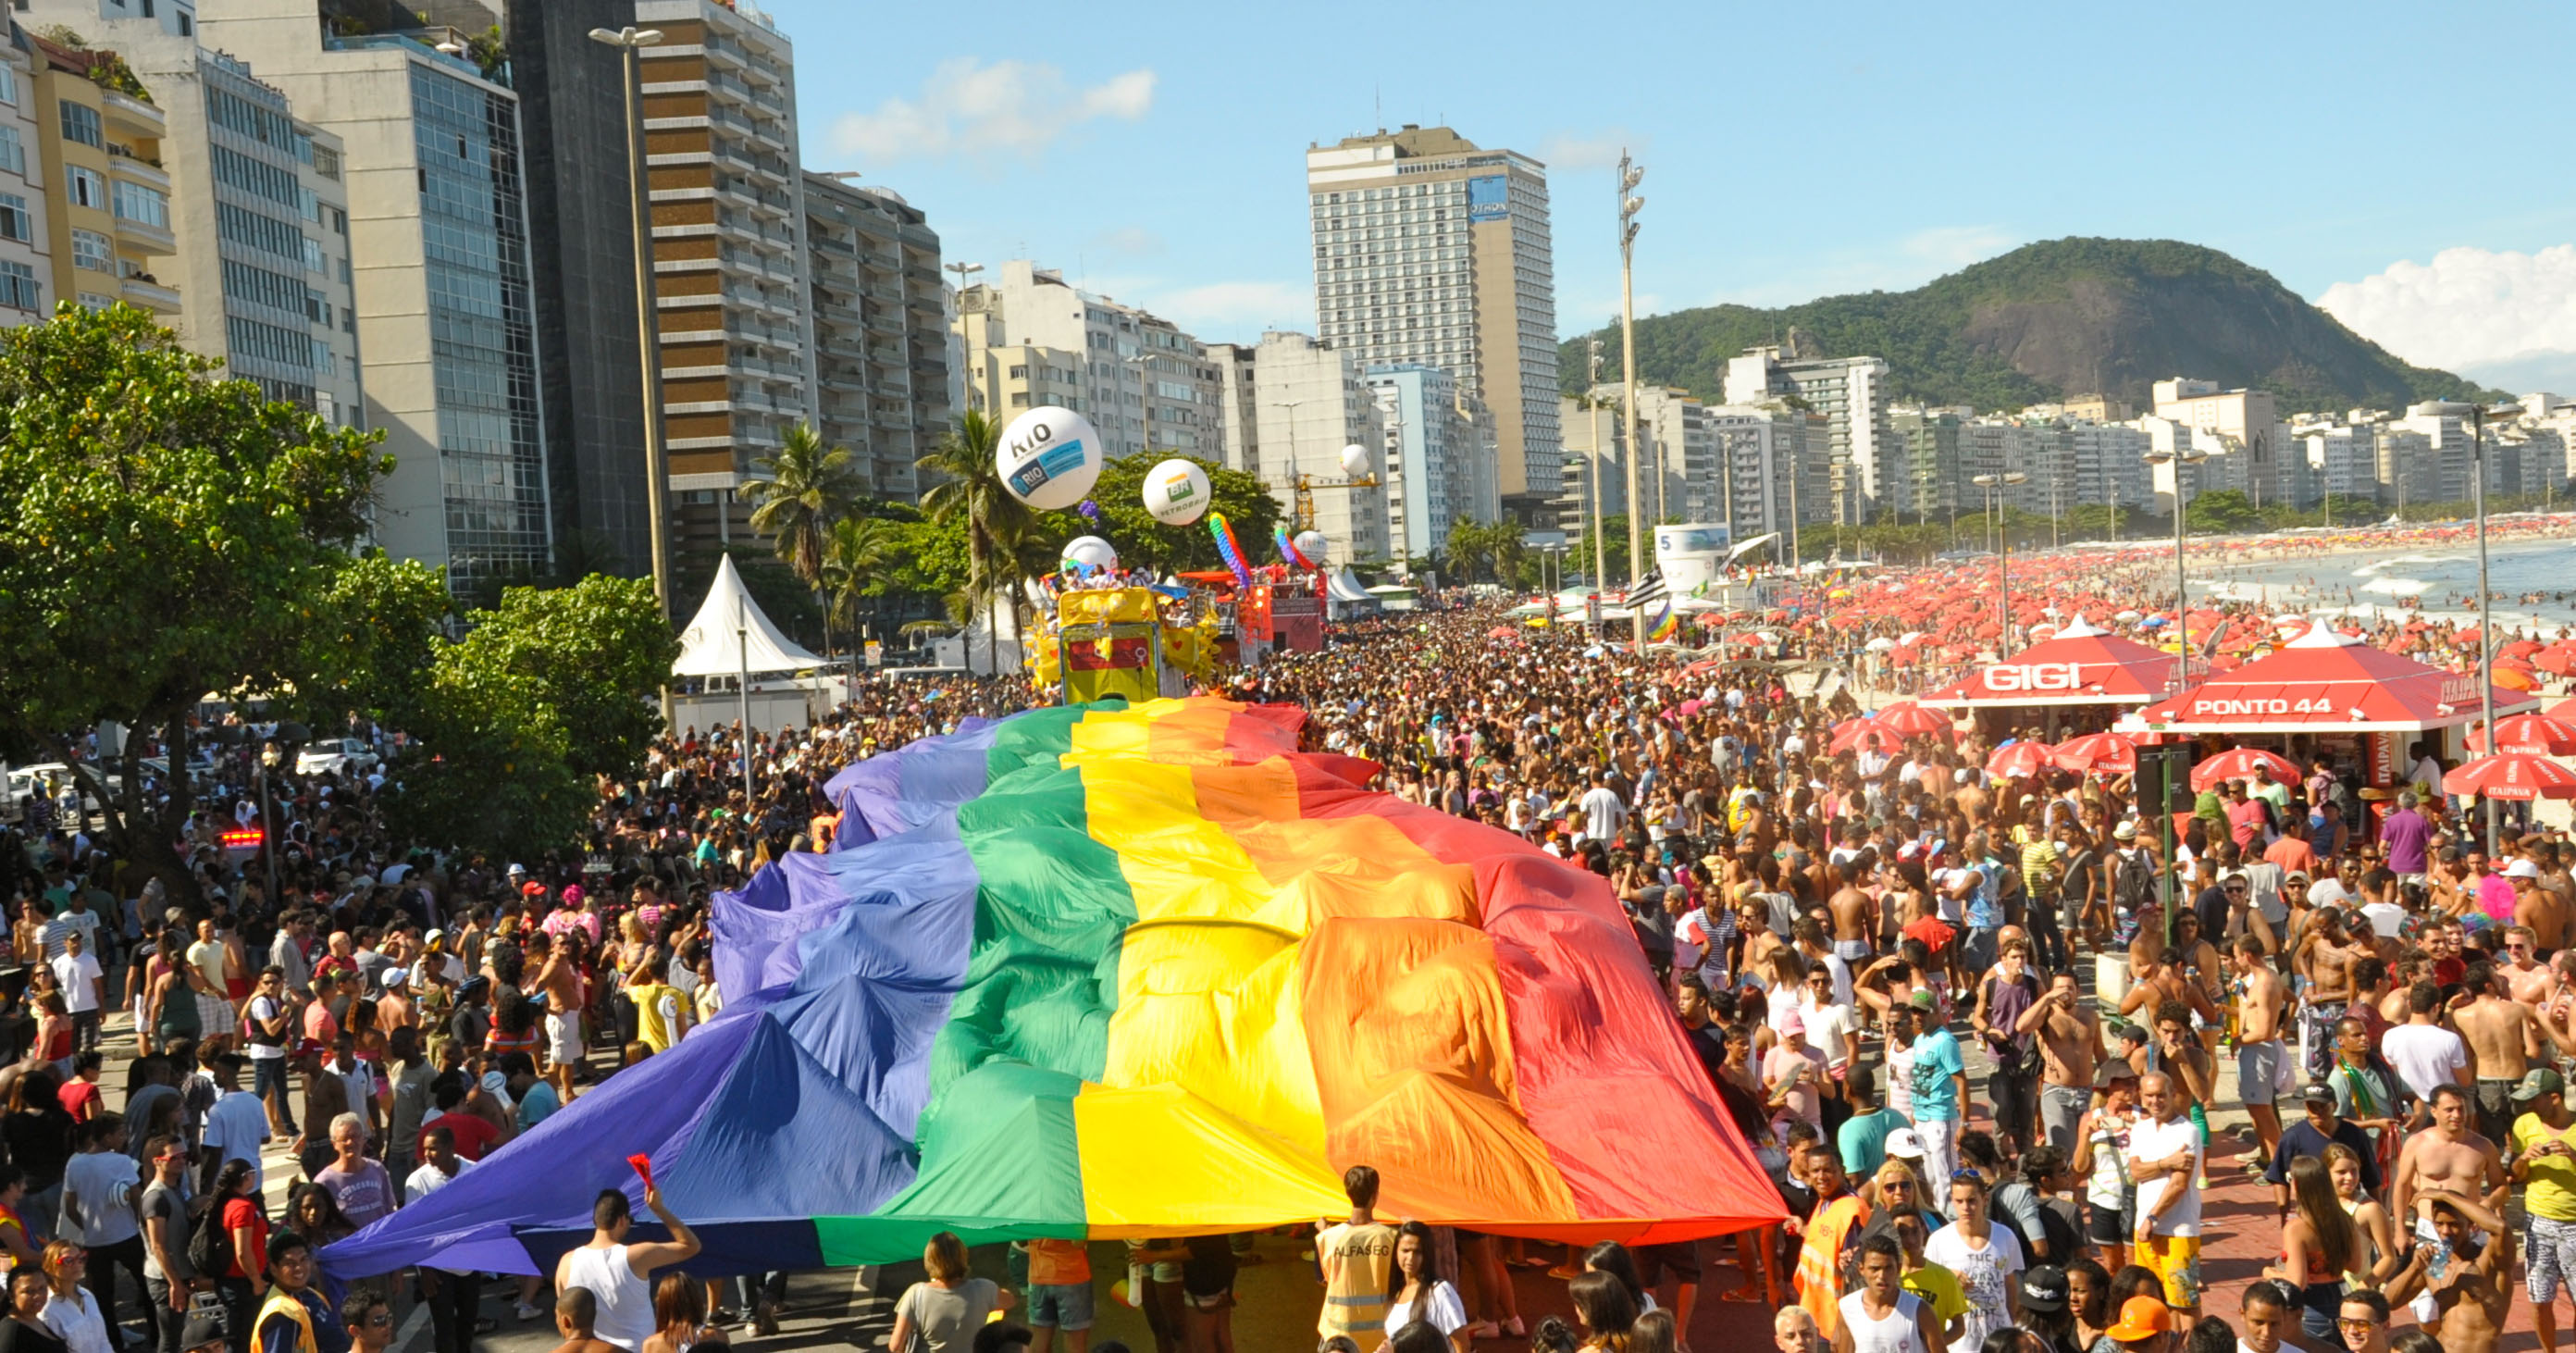 Hundreds of Brazilians on the beach in Rio carrying a huge Pride flag